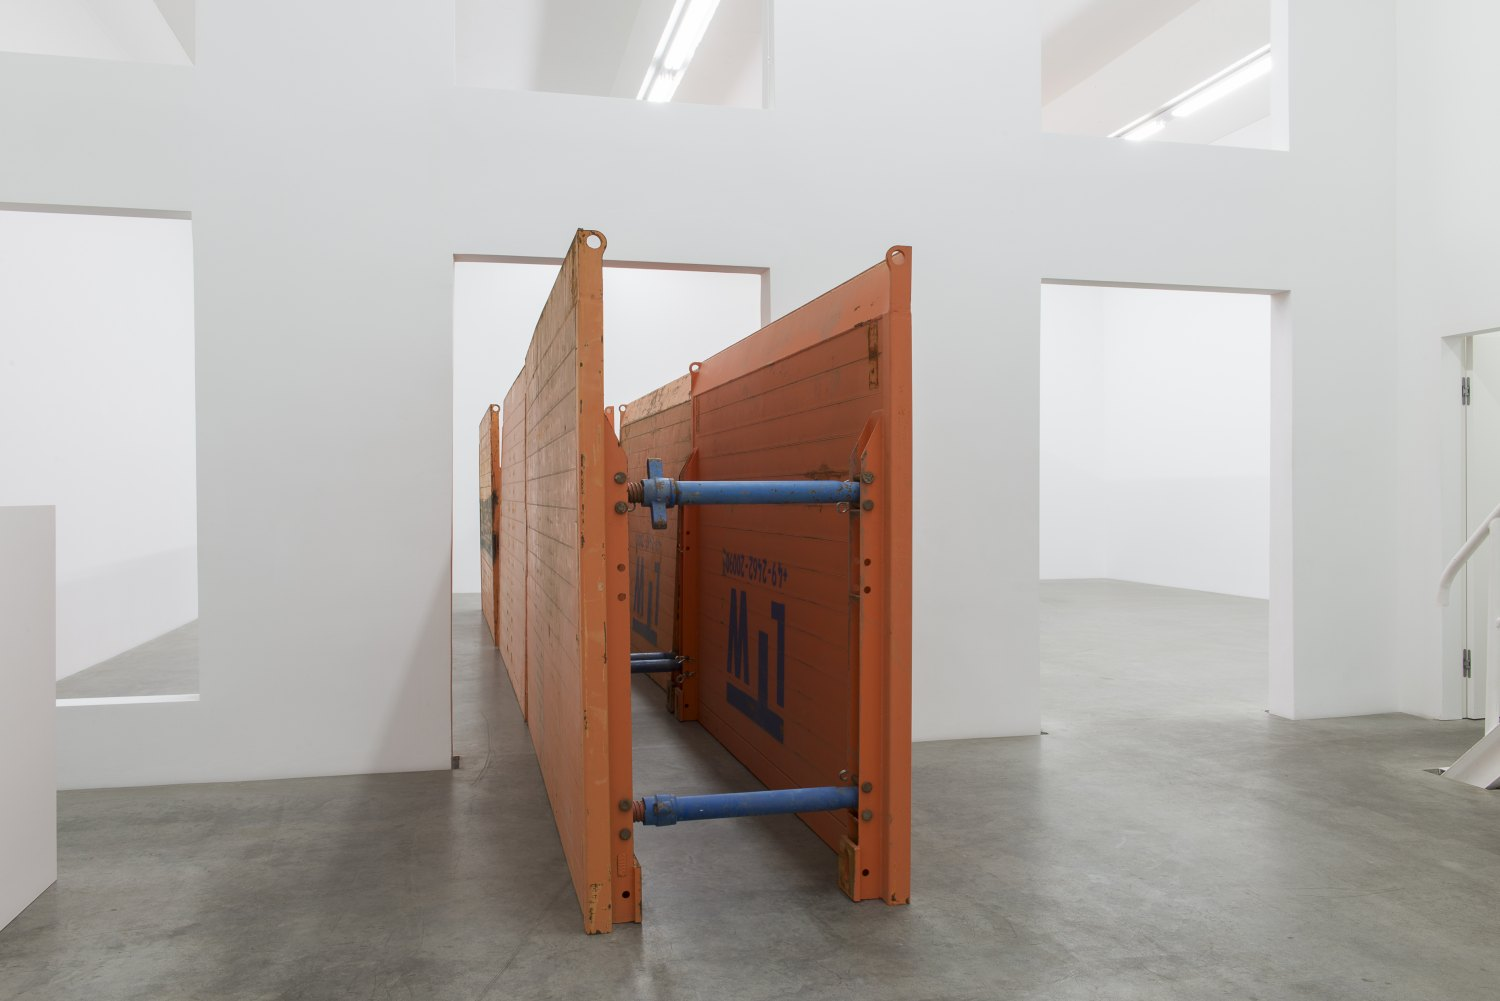 Matias Faldbakken & Leander Djønne Void to Void, 2017  Trench boxes, dimensions variable